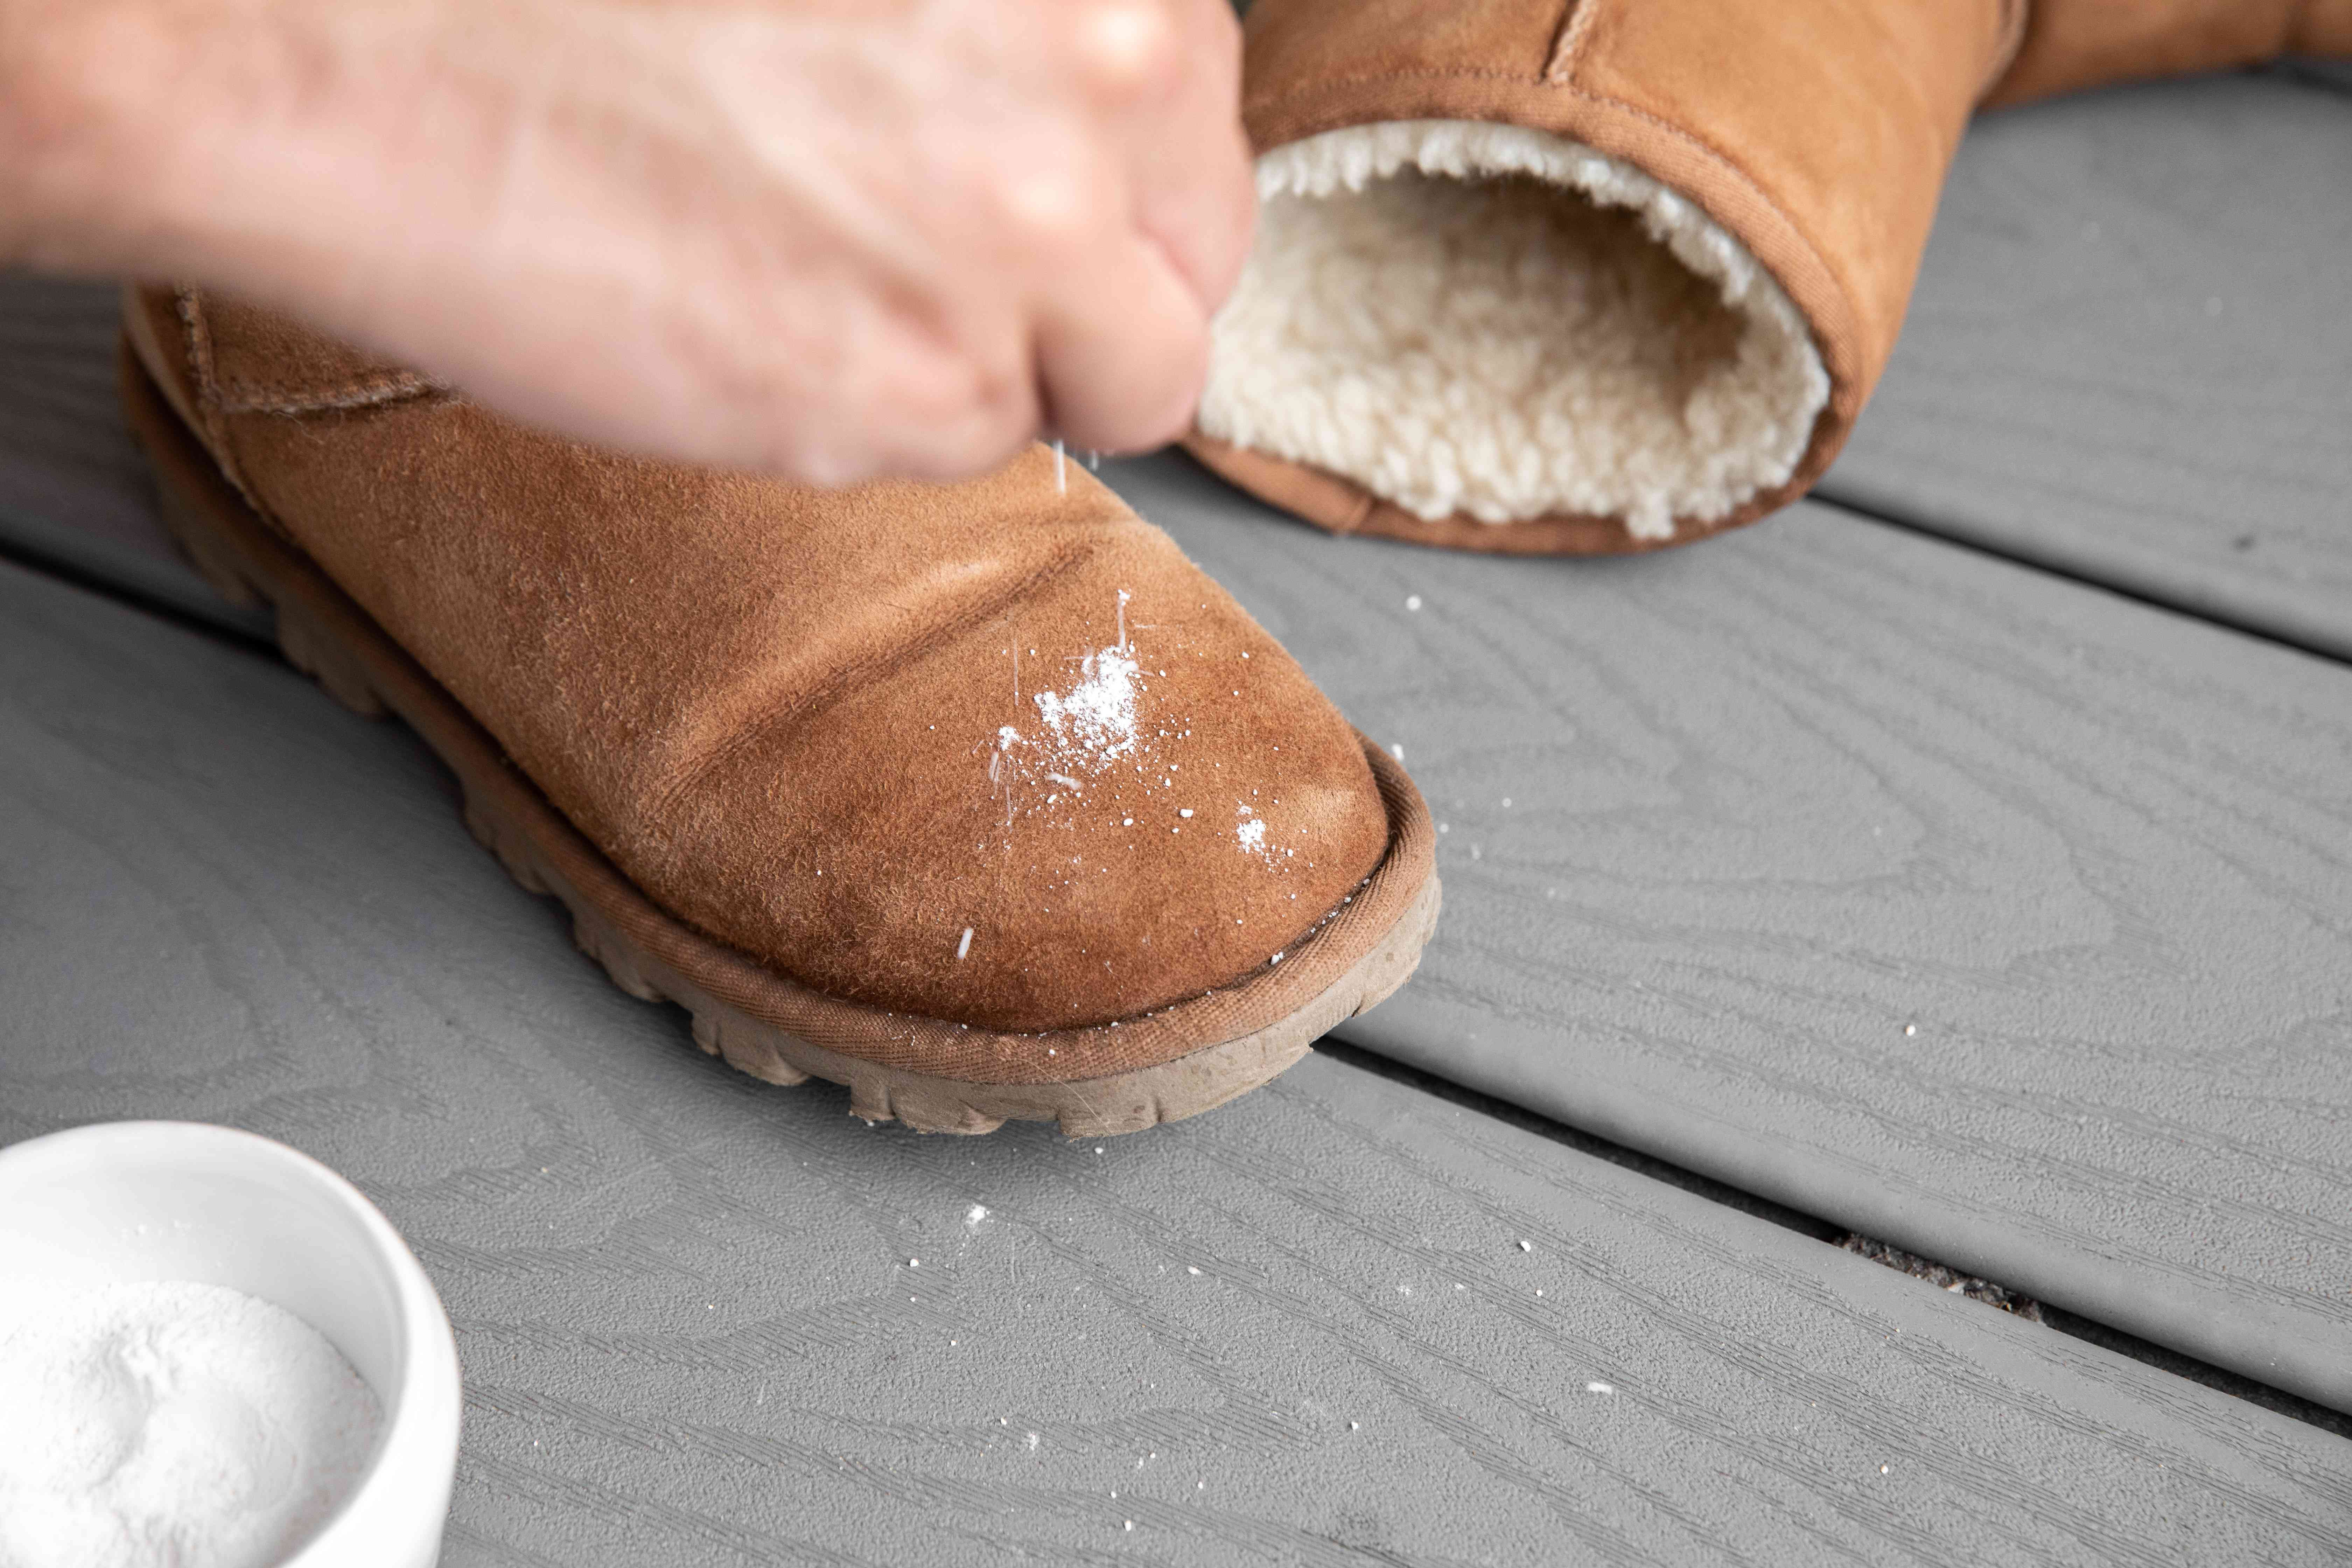 Someone sprinkling a boot with baby powder